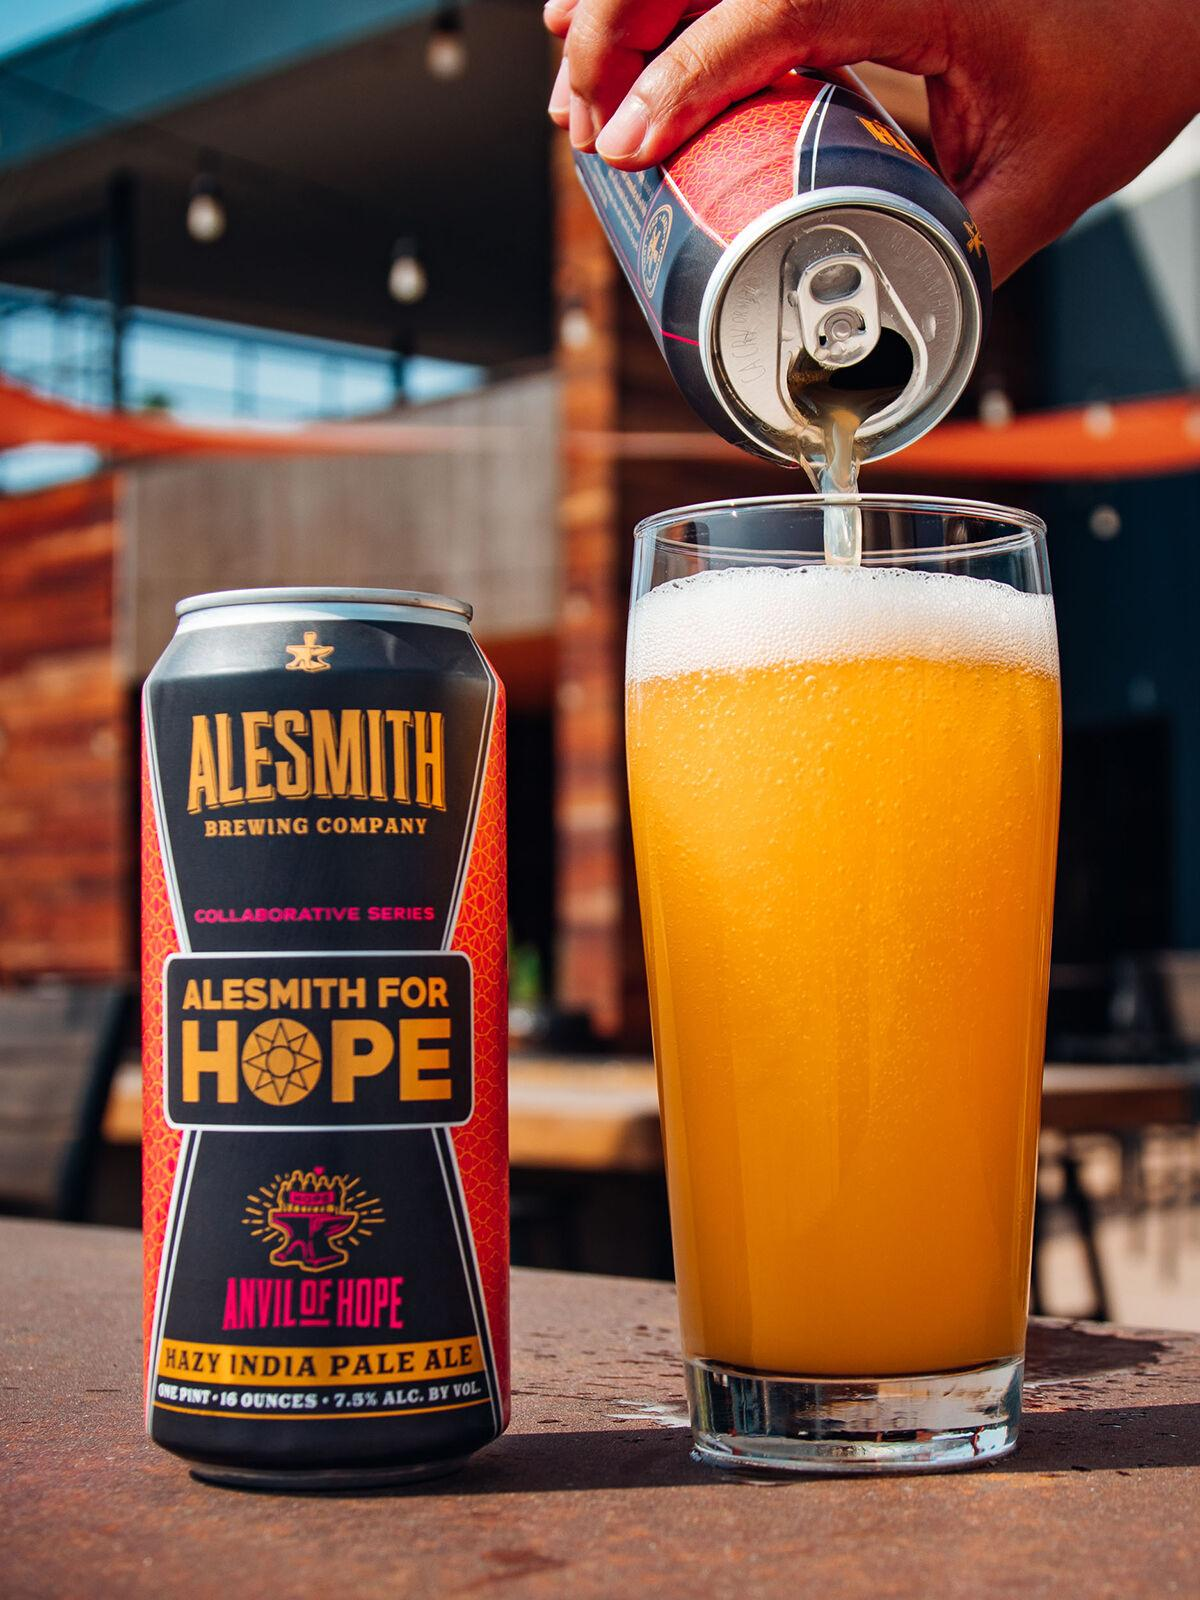 Charitable Beers / AleSmith Brewing Company